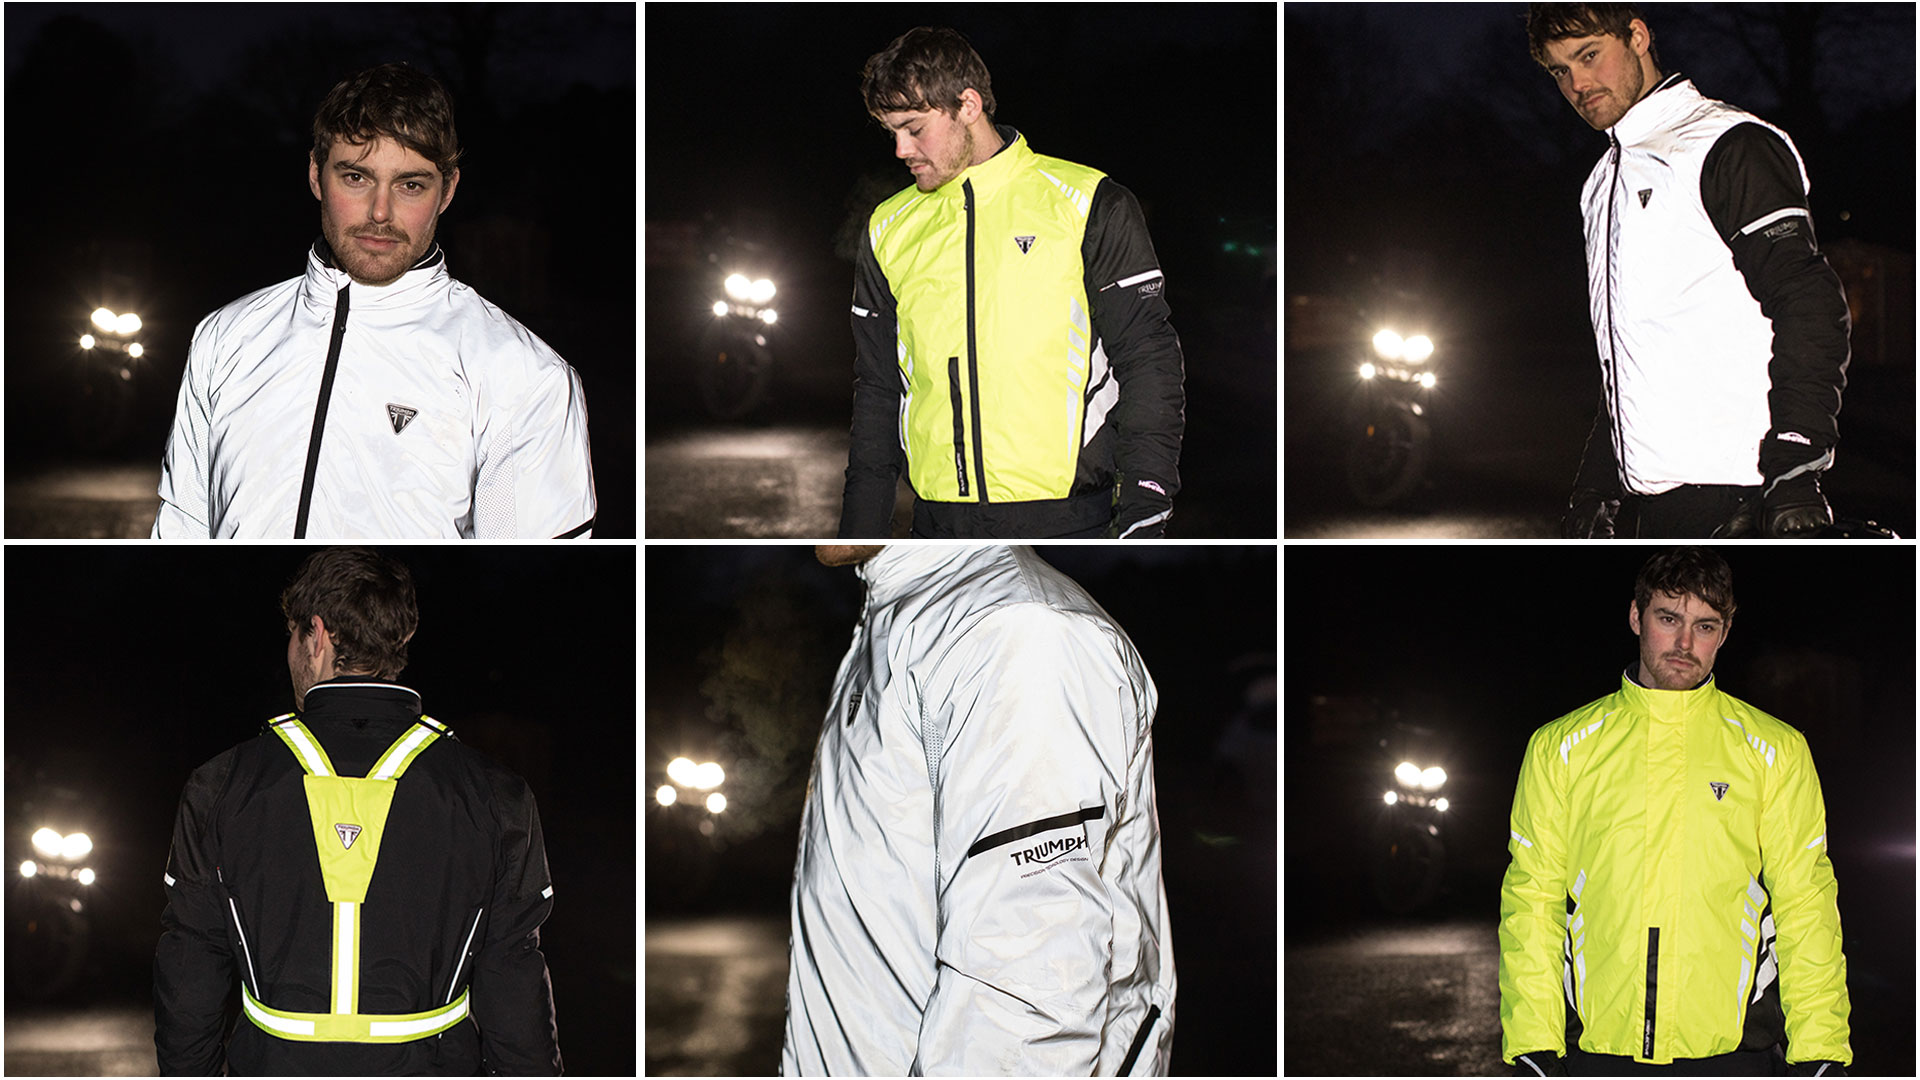 Triumph Riding Essentials Hi Vis Reflective Model Shots